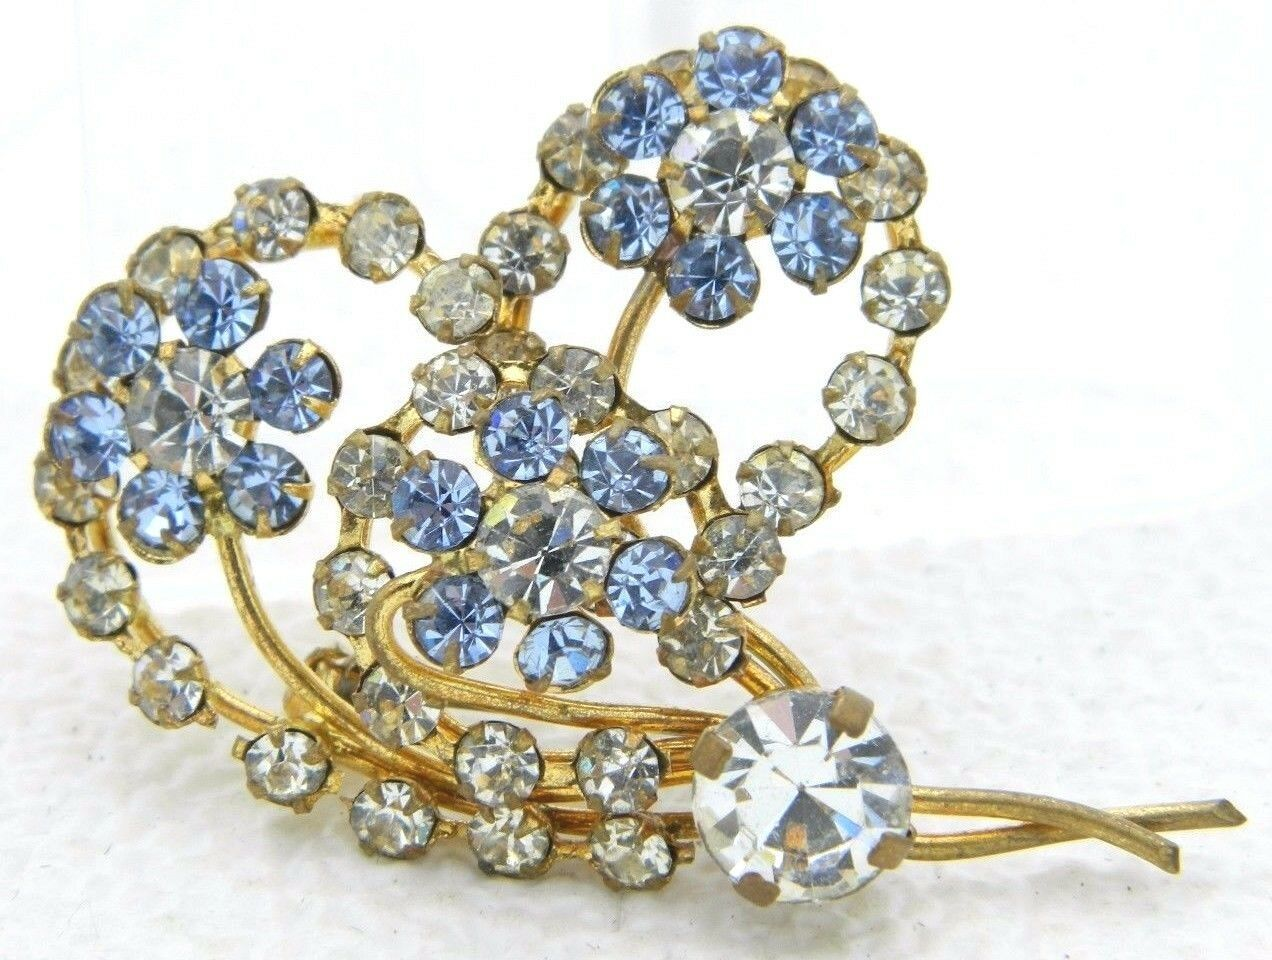 Vintage Gold Tone Blue Clear Rhinestone Heart Flower Pin Brooch image 1